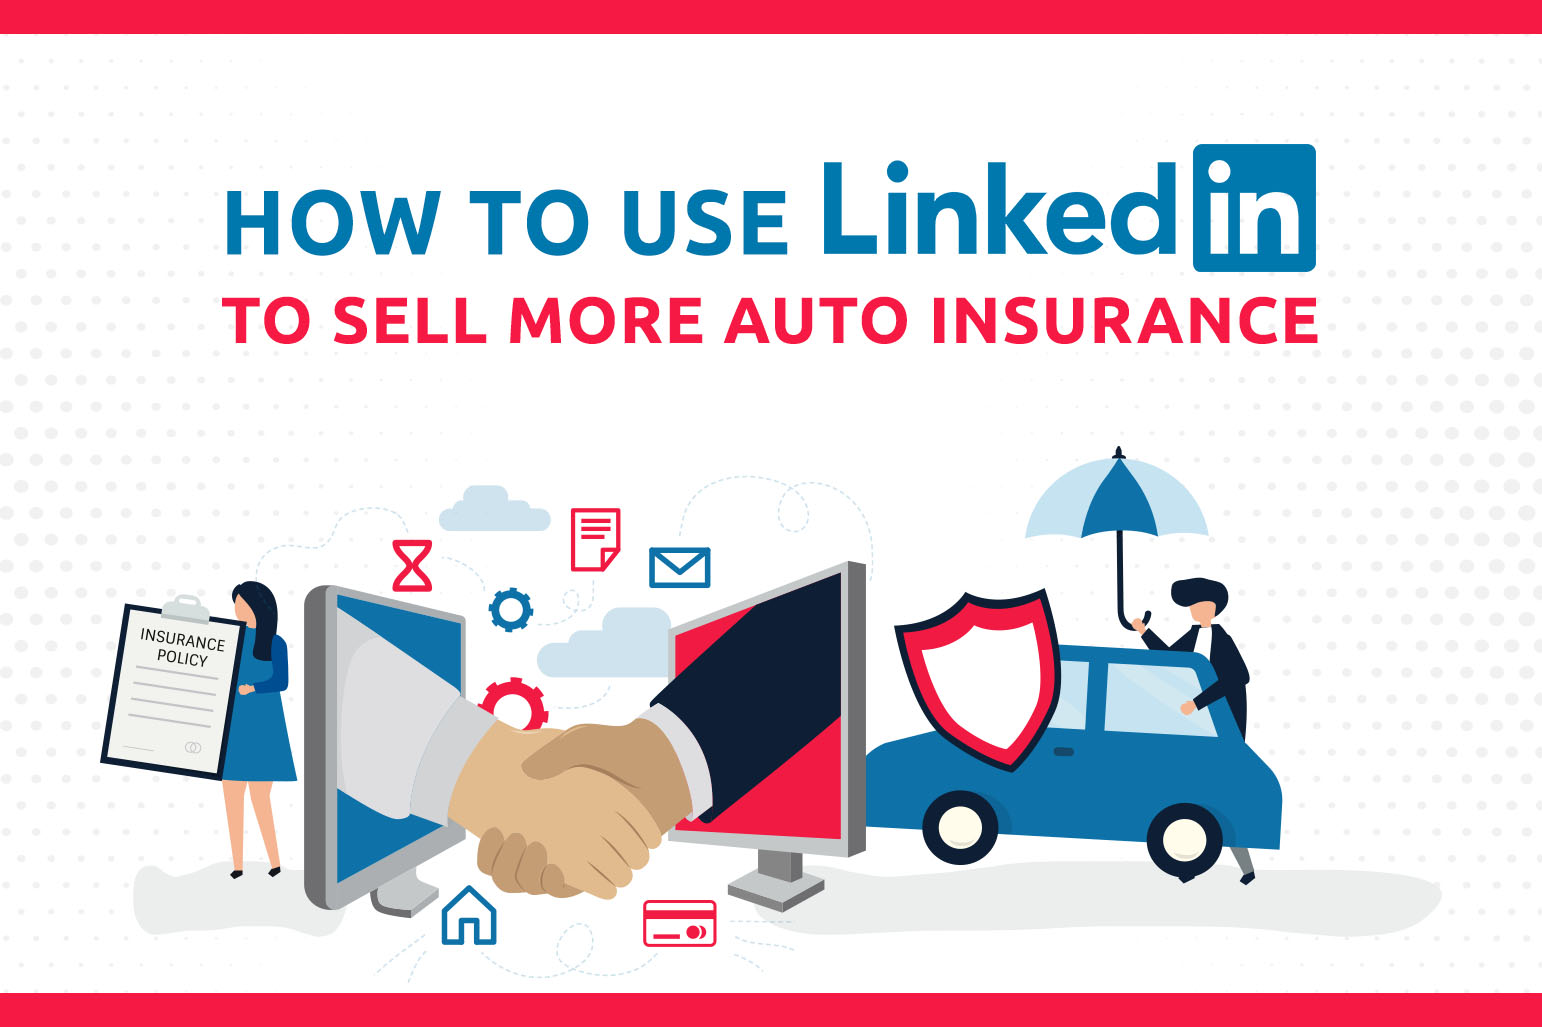 How To Use LinkedIn To Sell More Auto Insurance